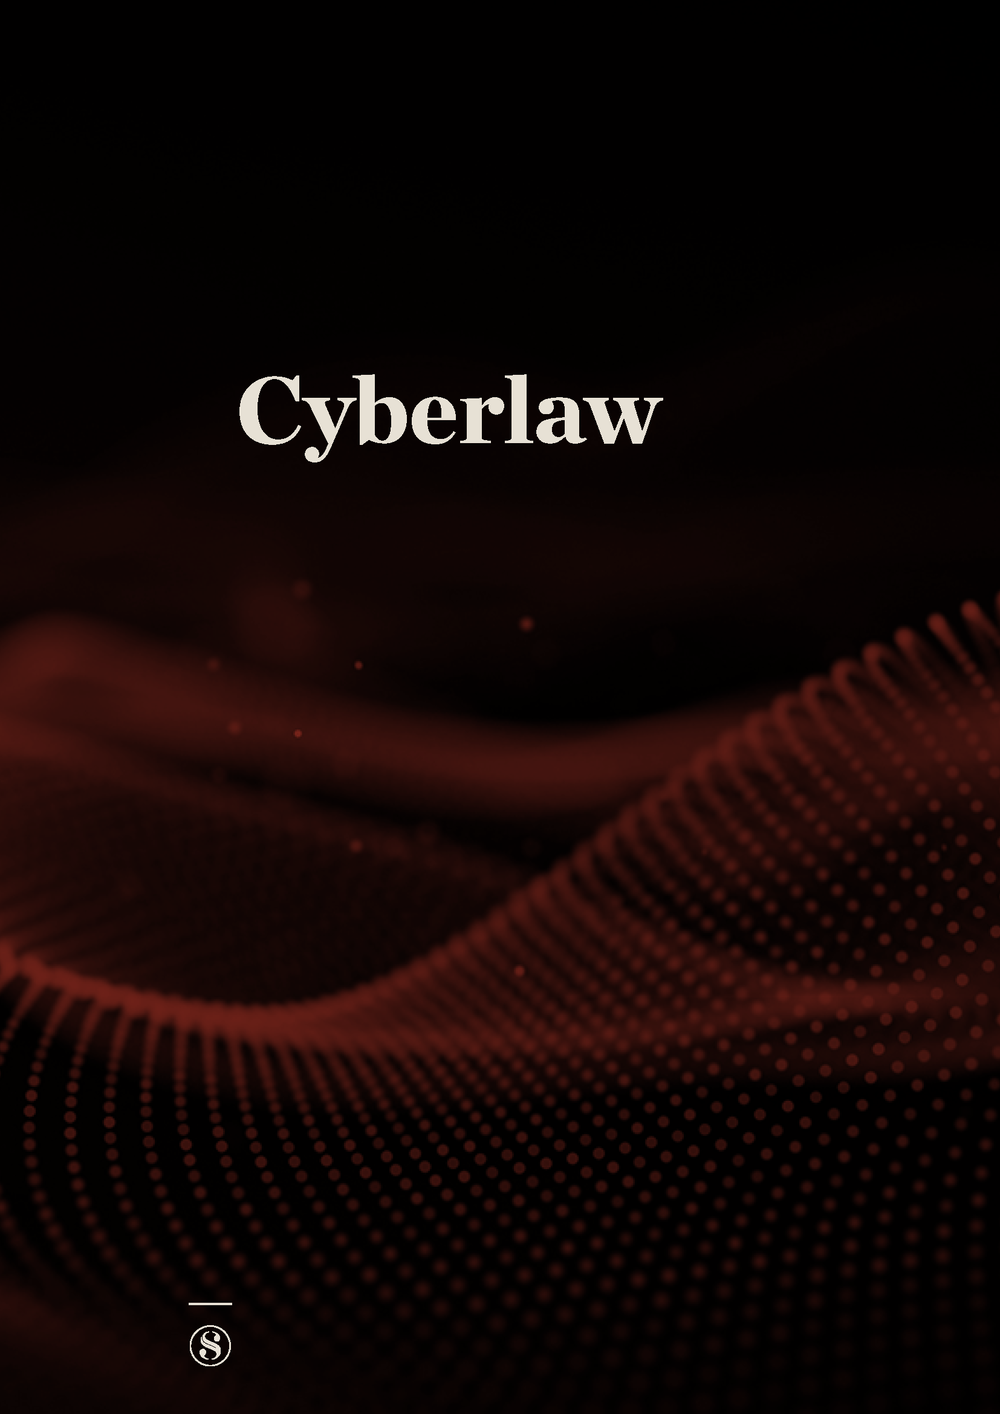 For further information download a copy of our Cyberlaw brochure -